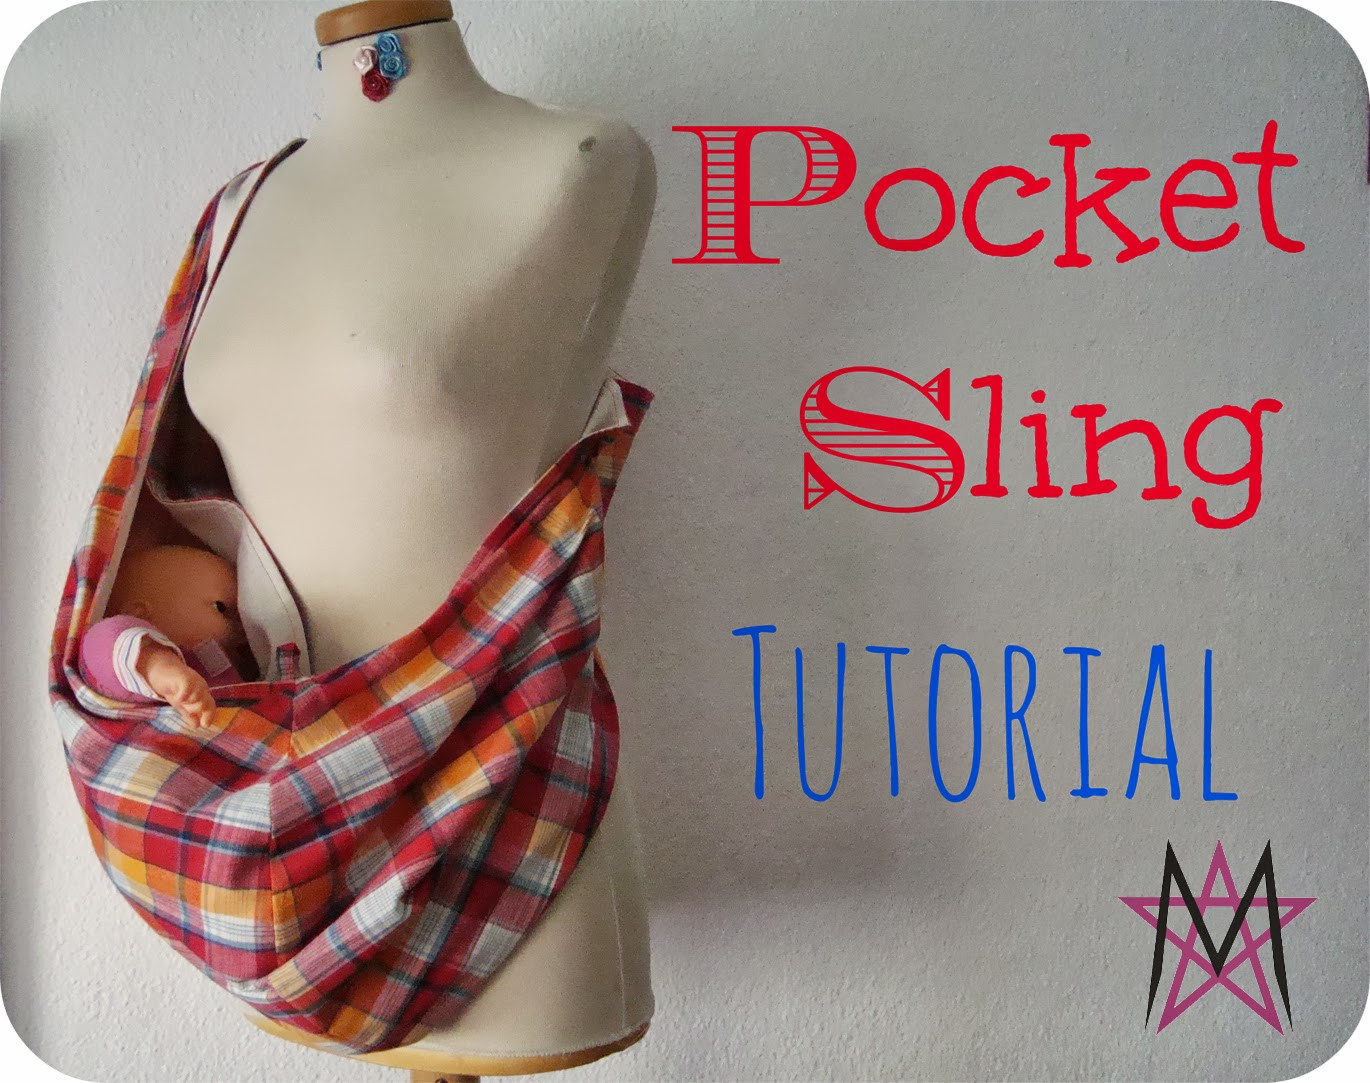 Best ideas about DIY Baby Carriers . Save or Pin House of Estrela Pocket Sling Tutorial Now.